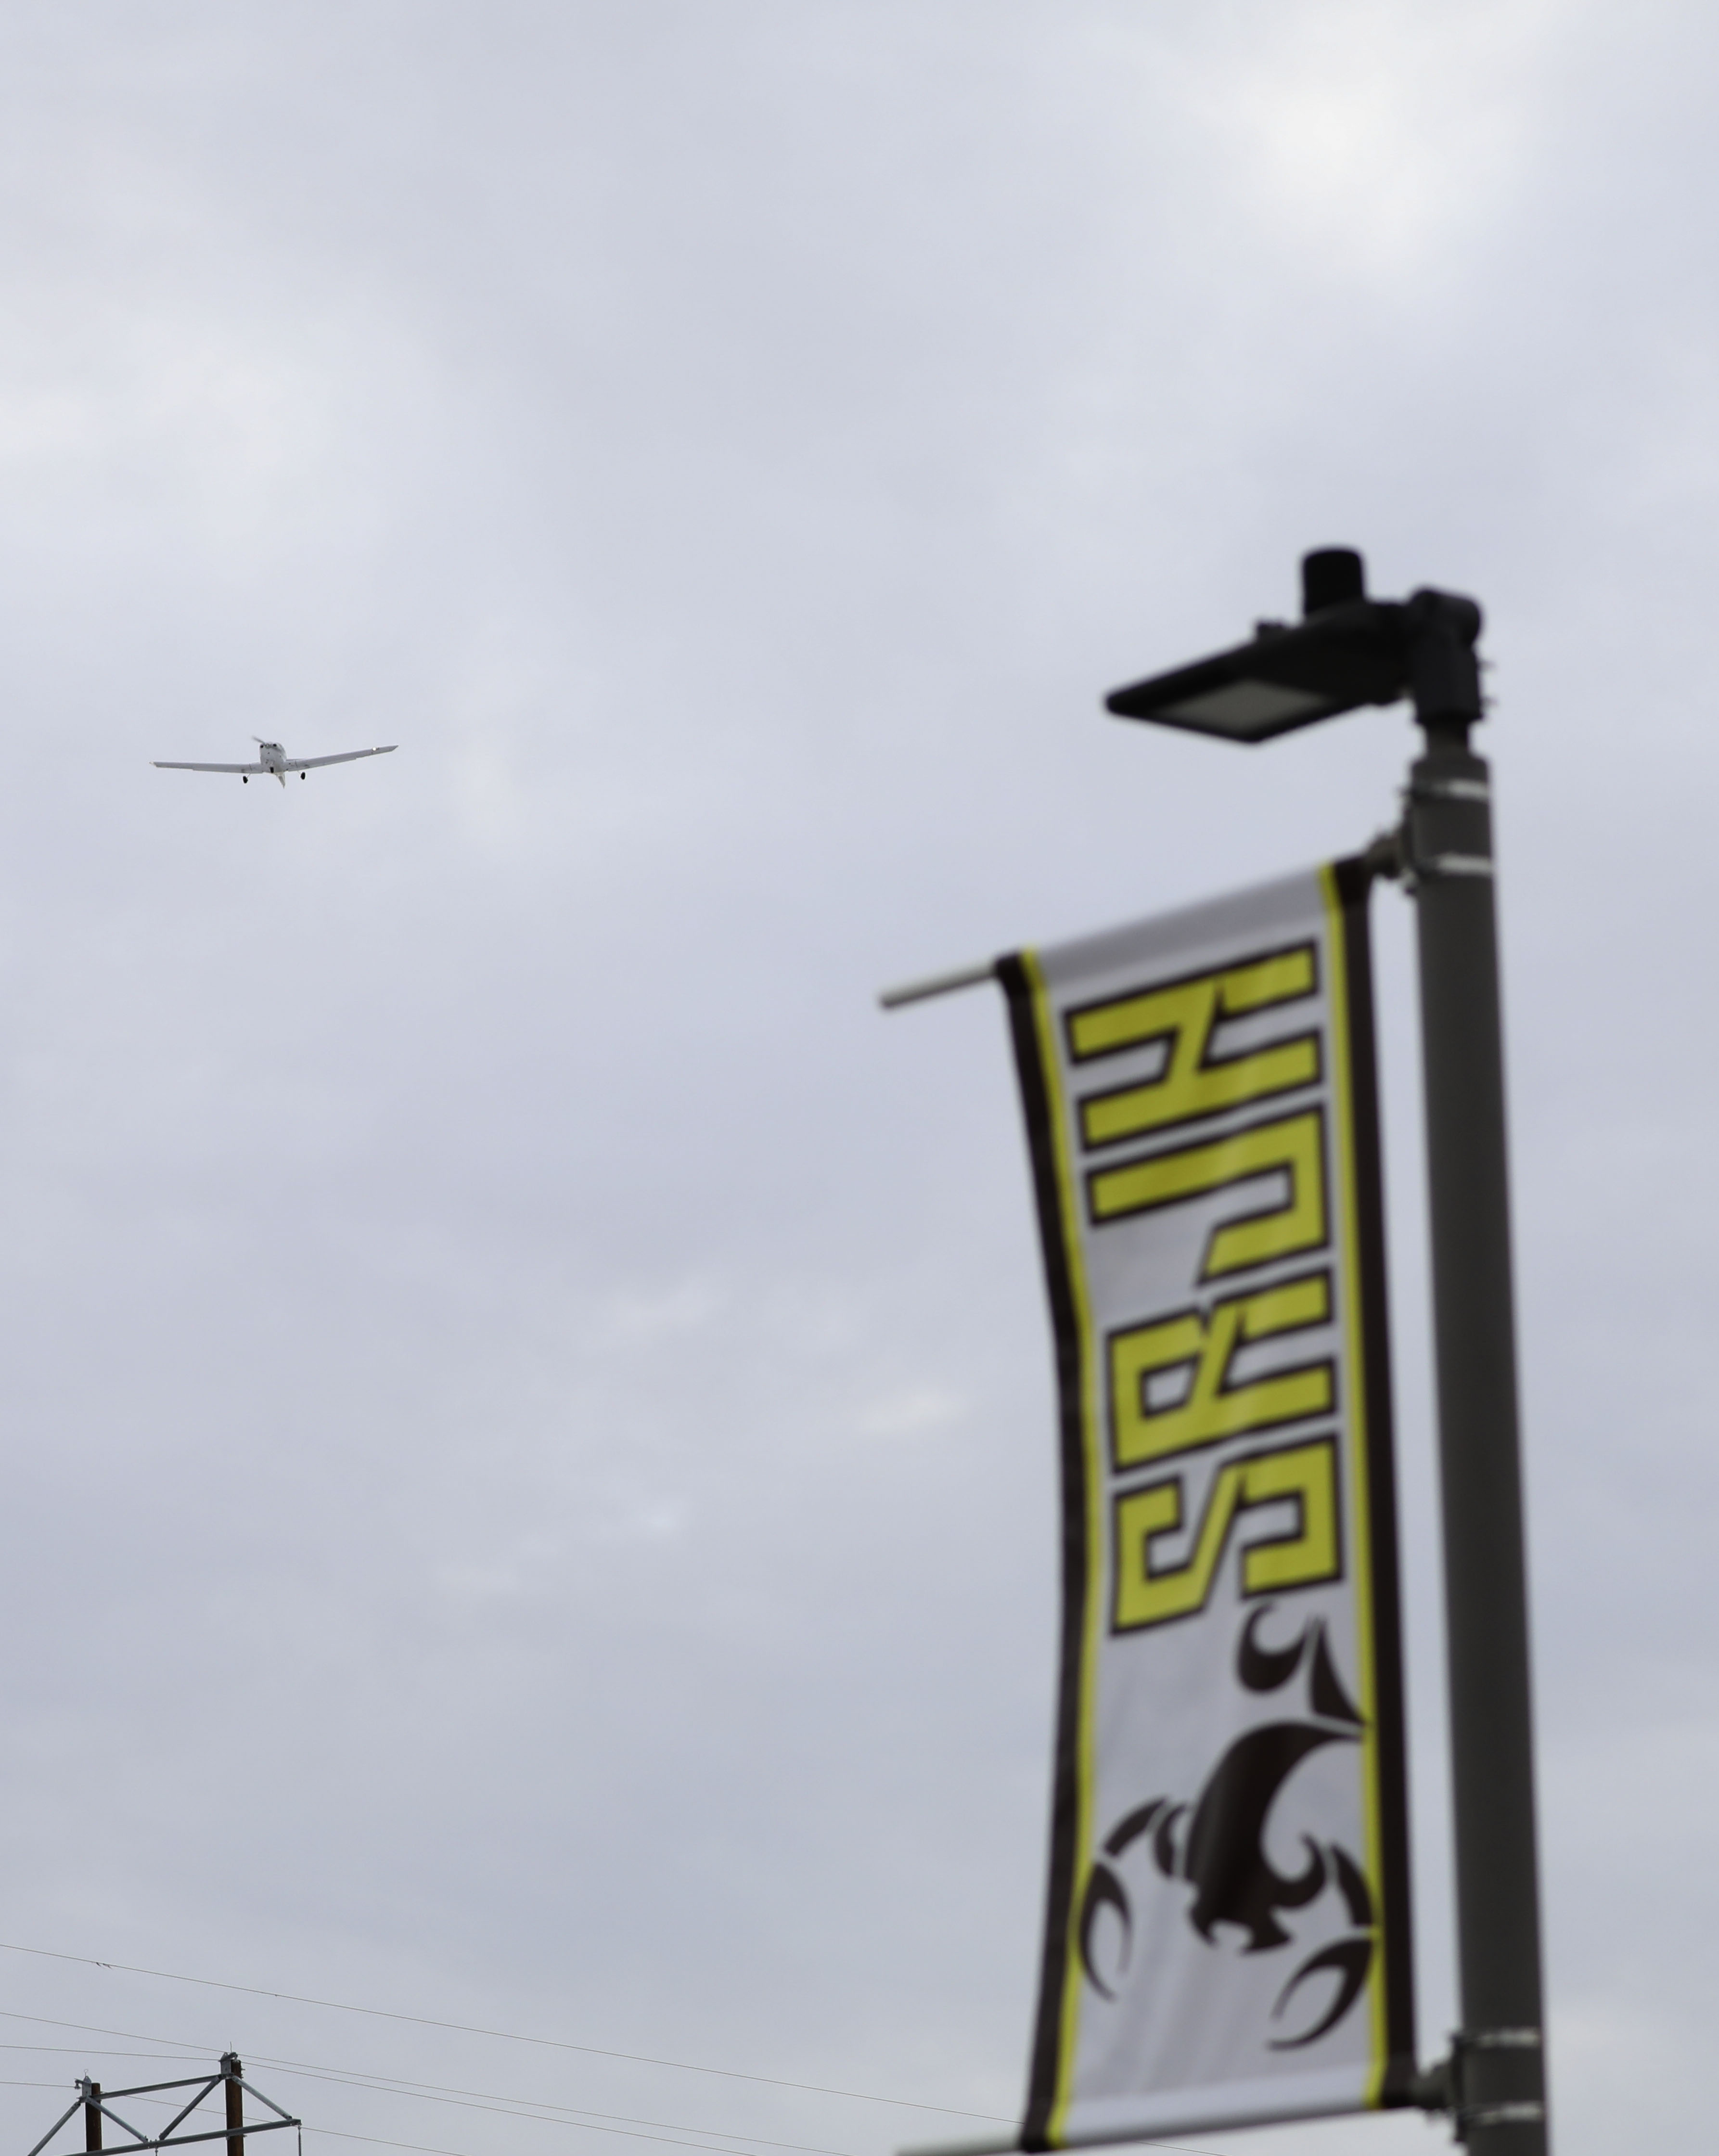 An aircraft flies in the vicinity of Sand Ridge Junior High School in Roy on Thursday, Jan. 16, 2020.